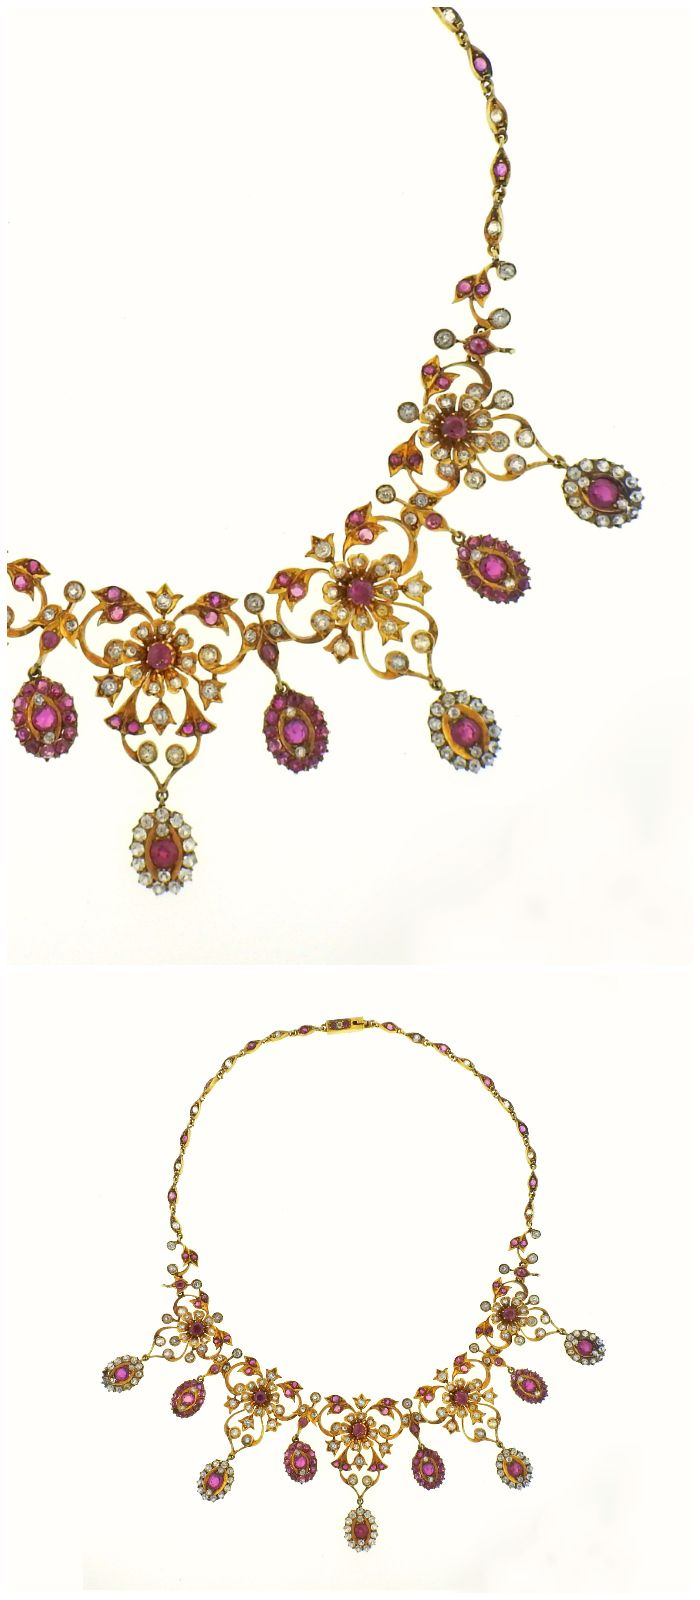 1000+ ideas about Ruby Necklace on Pinterest | Jewellery ...